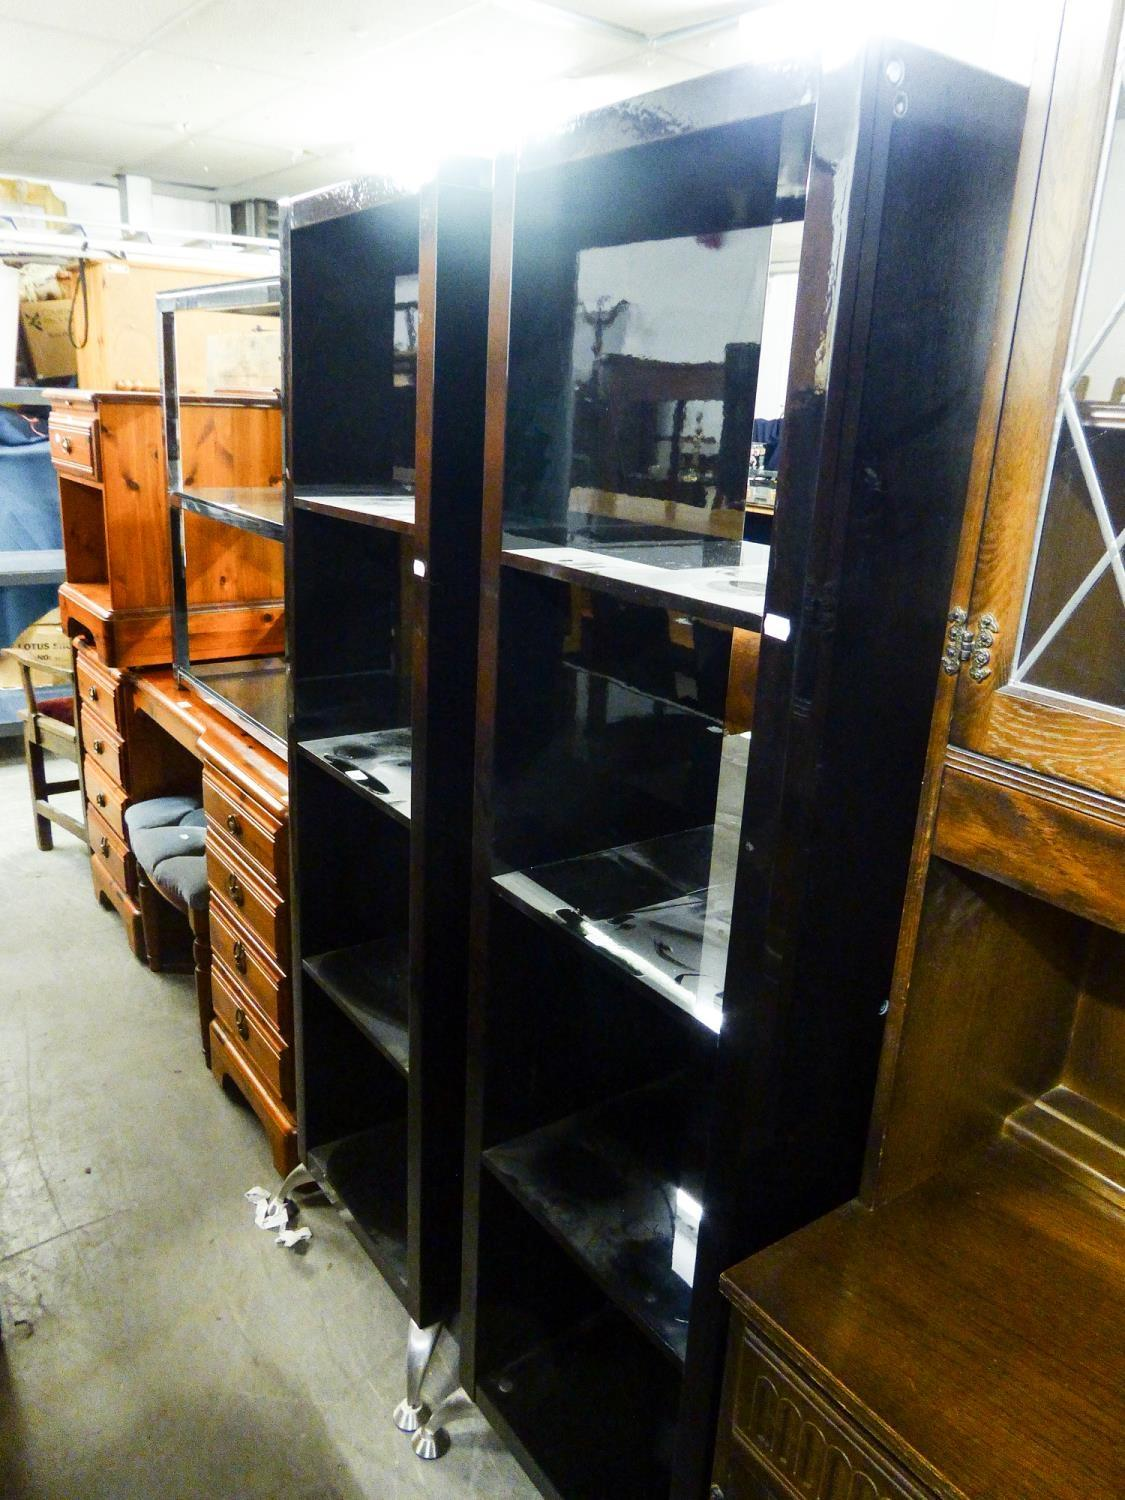 Lot 29 - PAIR OF MODERN BLACK HIGH GLOSS FINISH OPEN BOOKCASES AND A THREE TIER SIDE TABLE WITH GLASS SHELVES